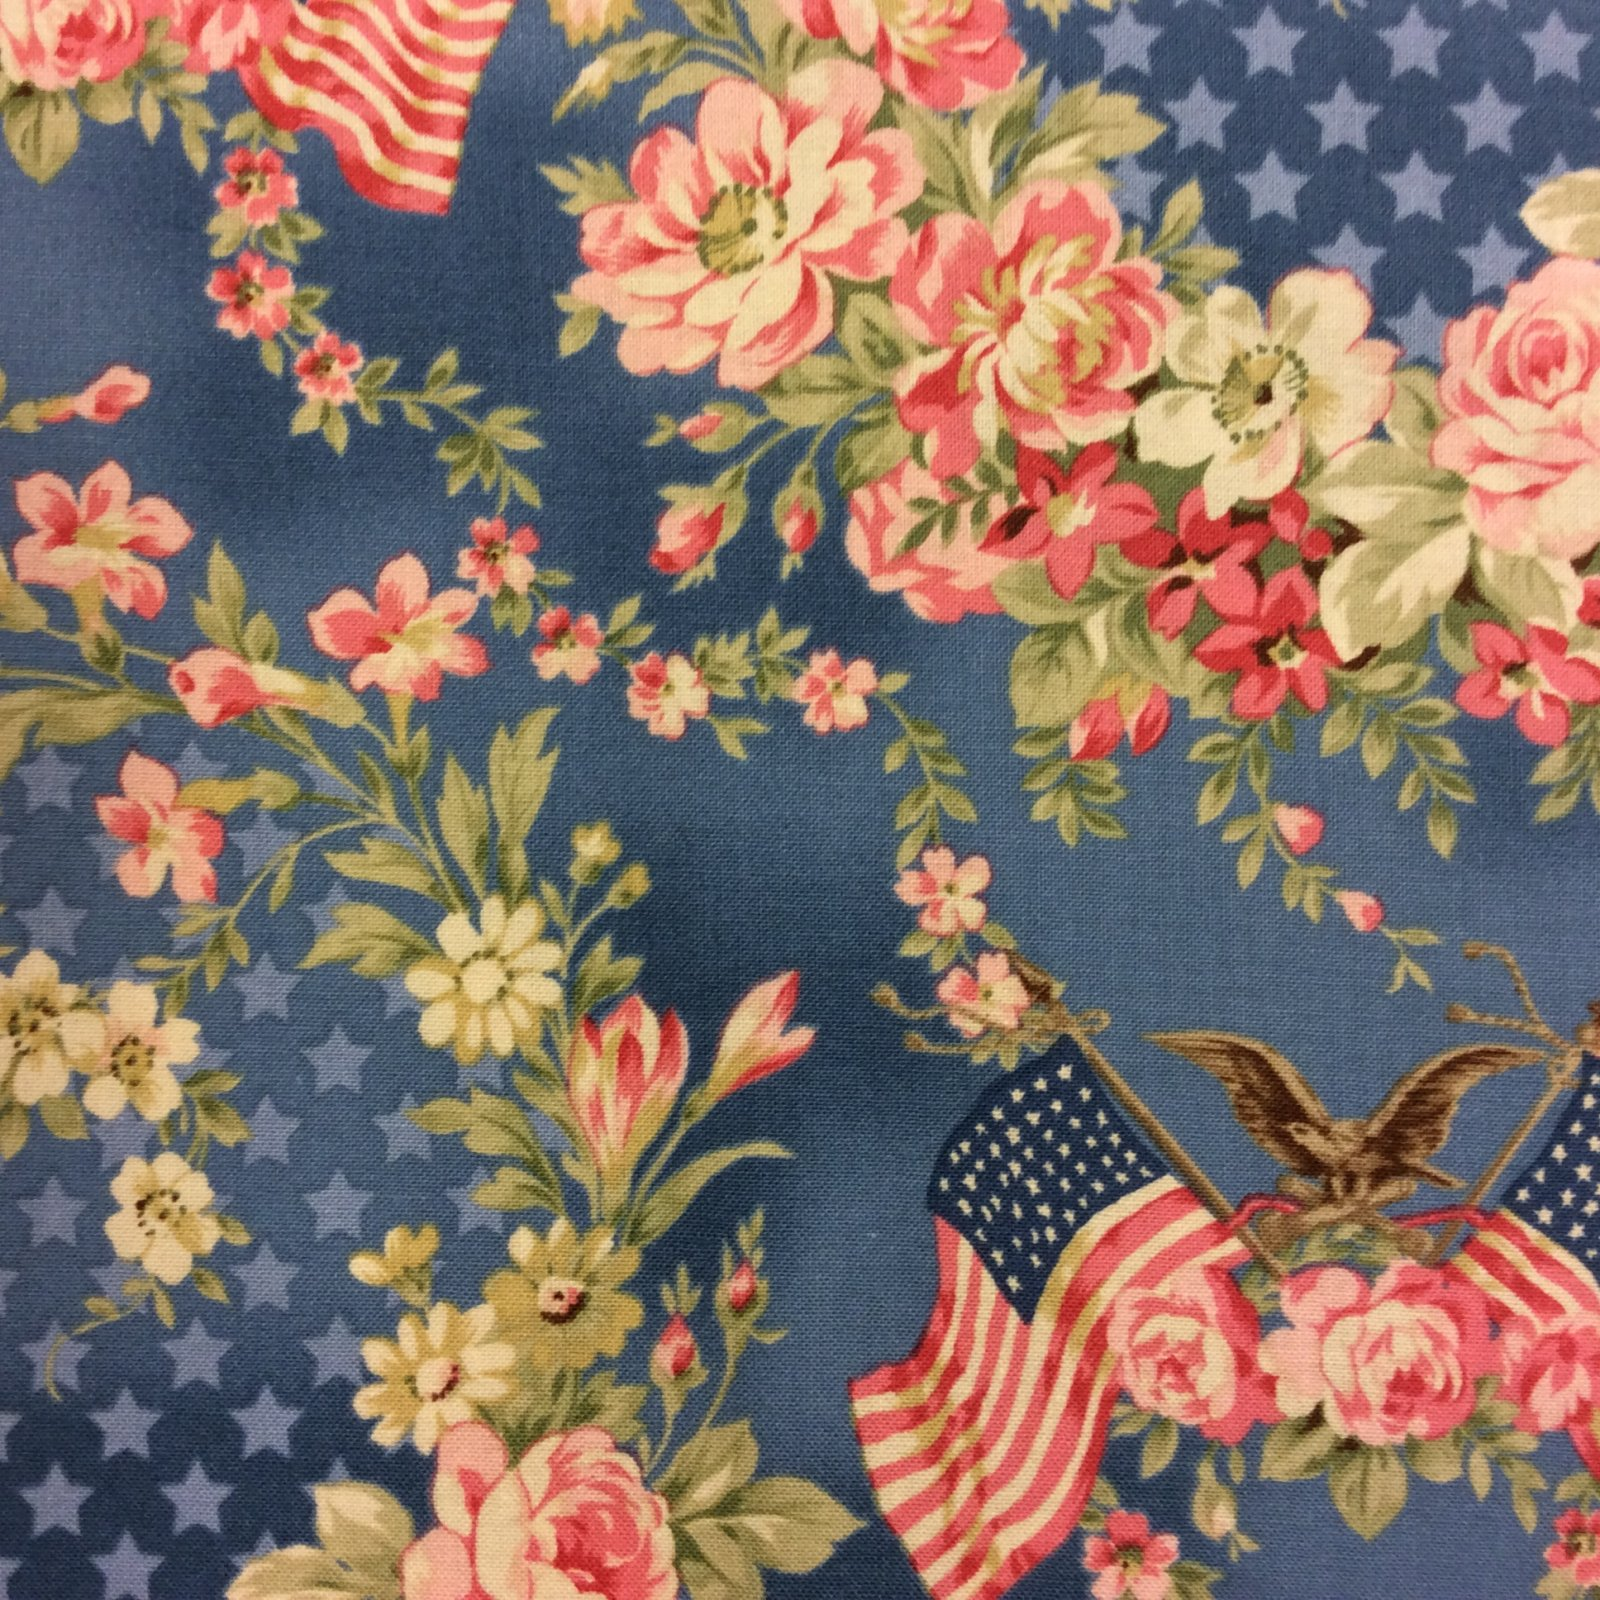 Md68 victorian style usa floral flag eagle star patriotic for Victorian floral fabric